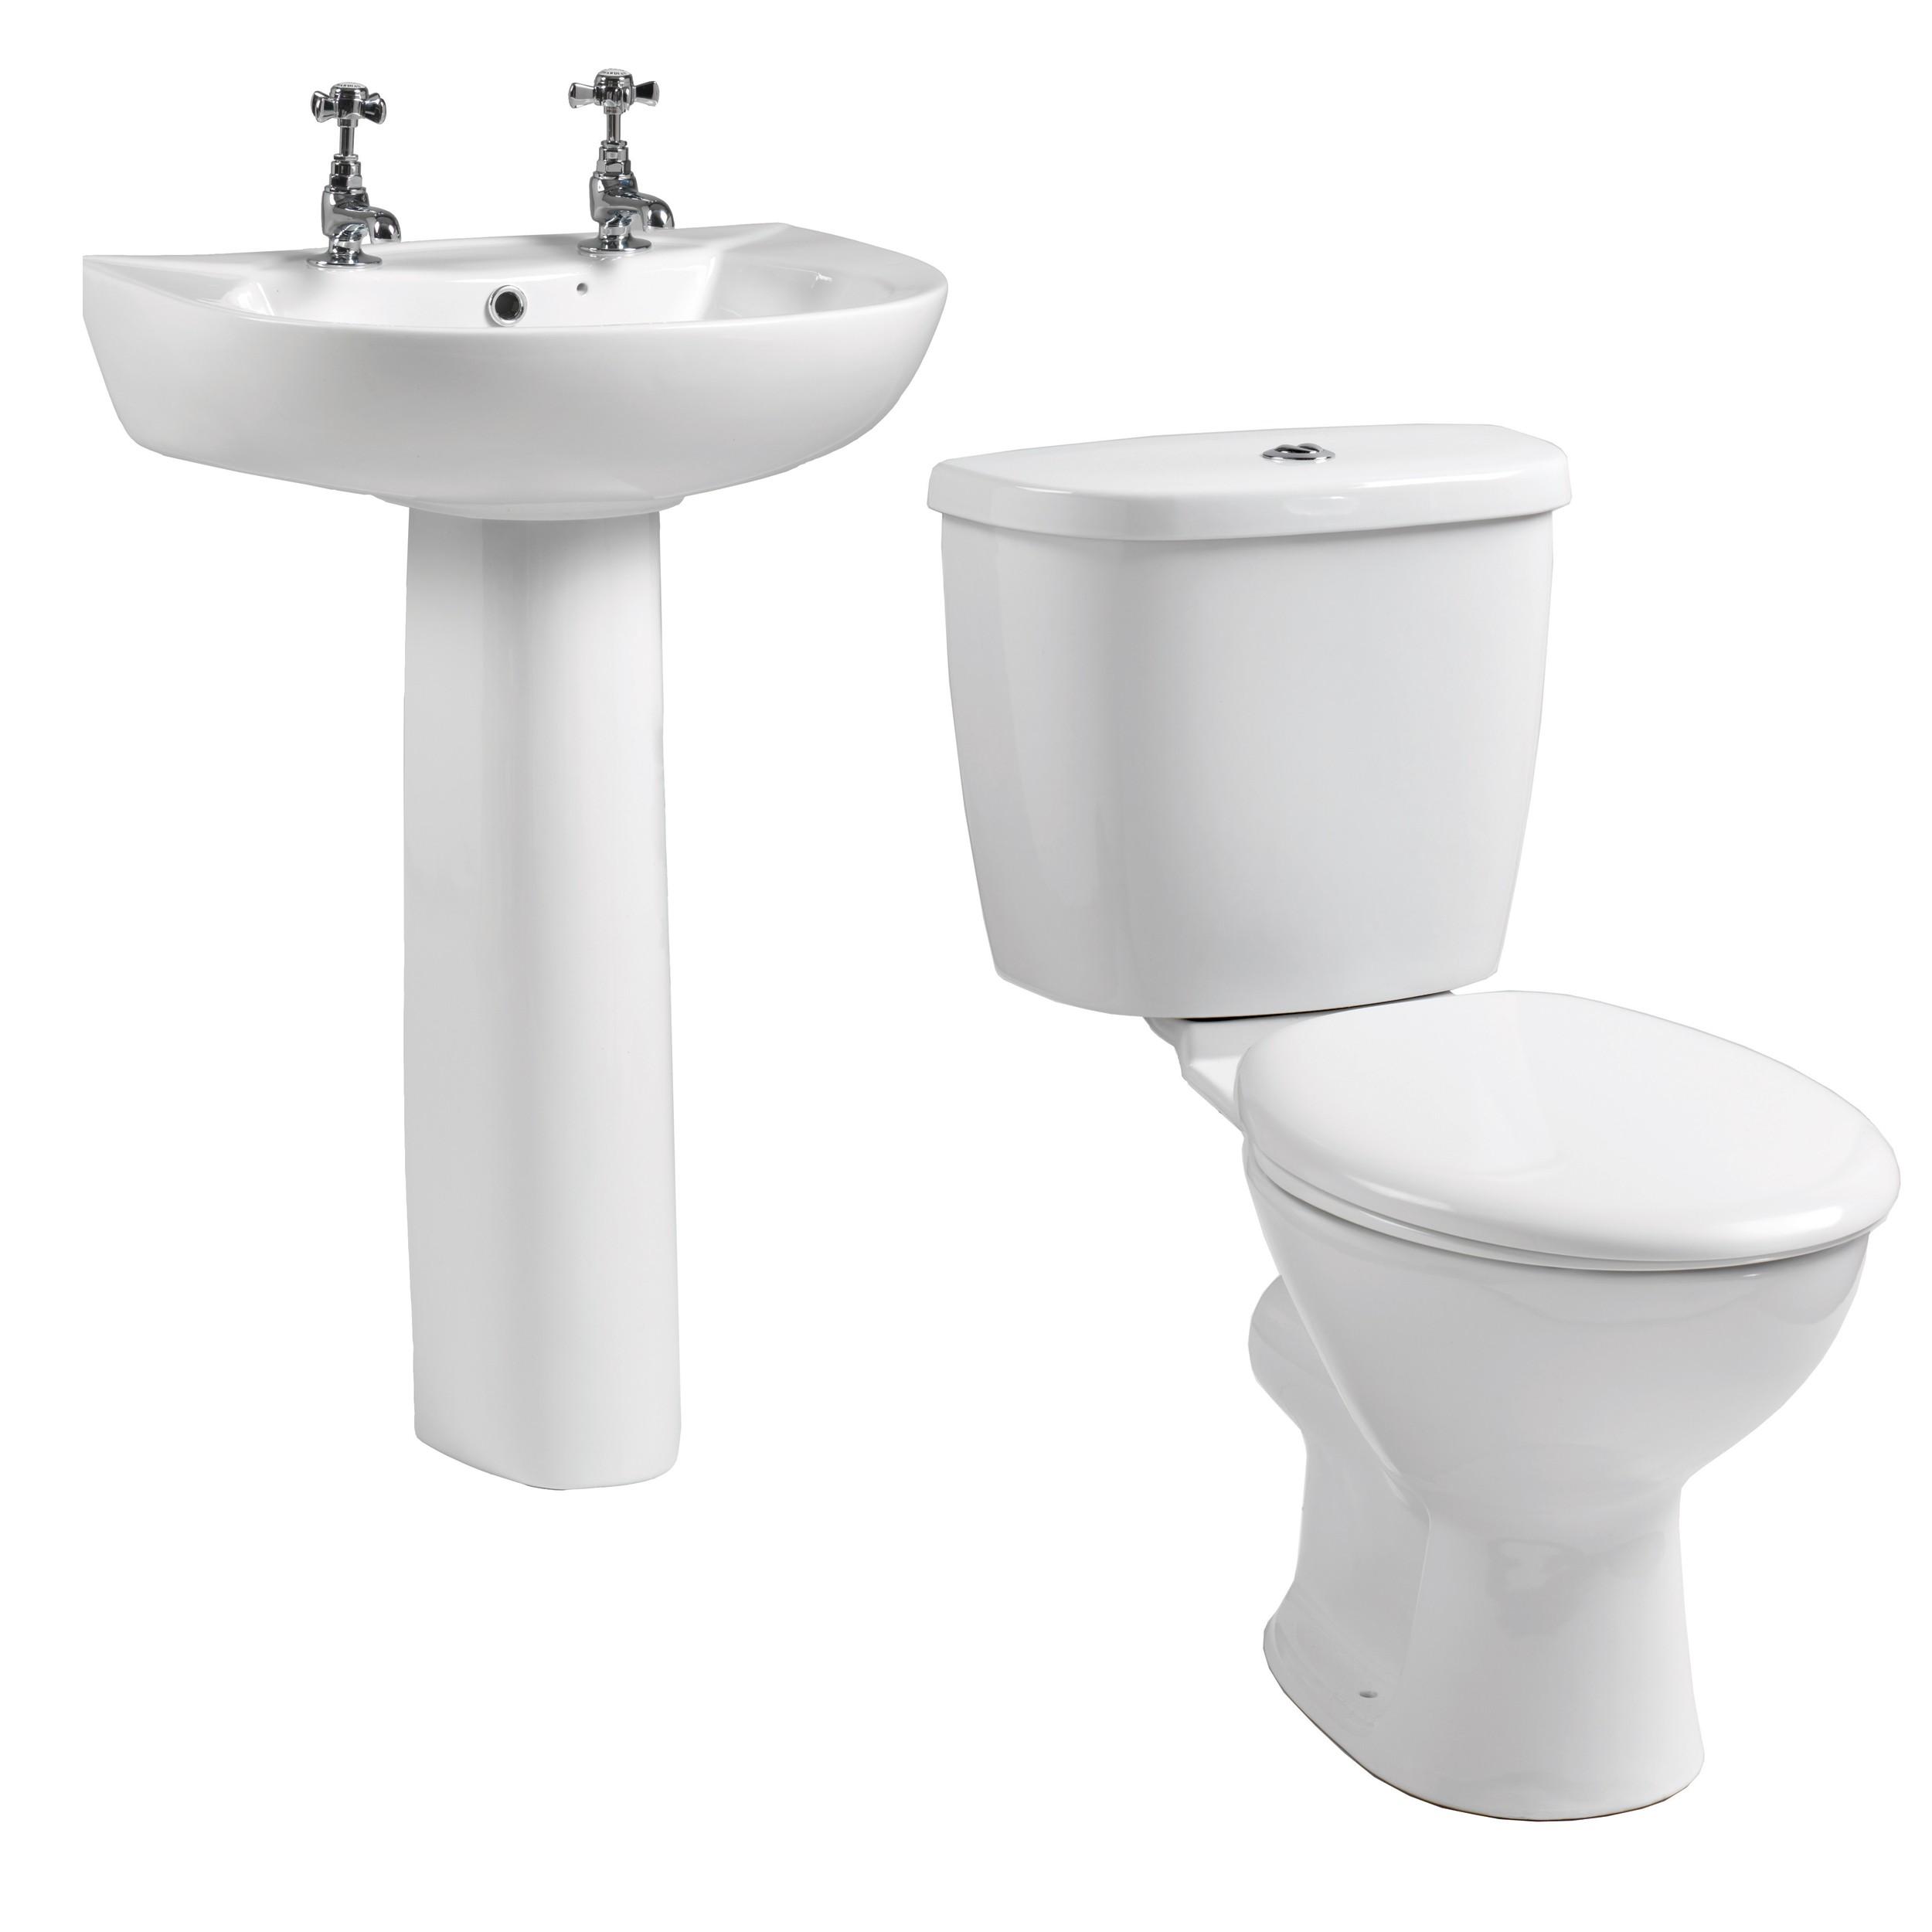 Glamorous Sanitary Ware Vat Pictures - Simple Design Home - levitra-9.us